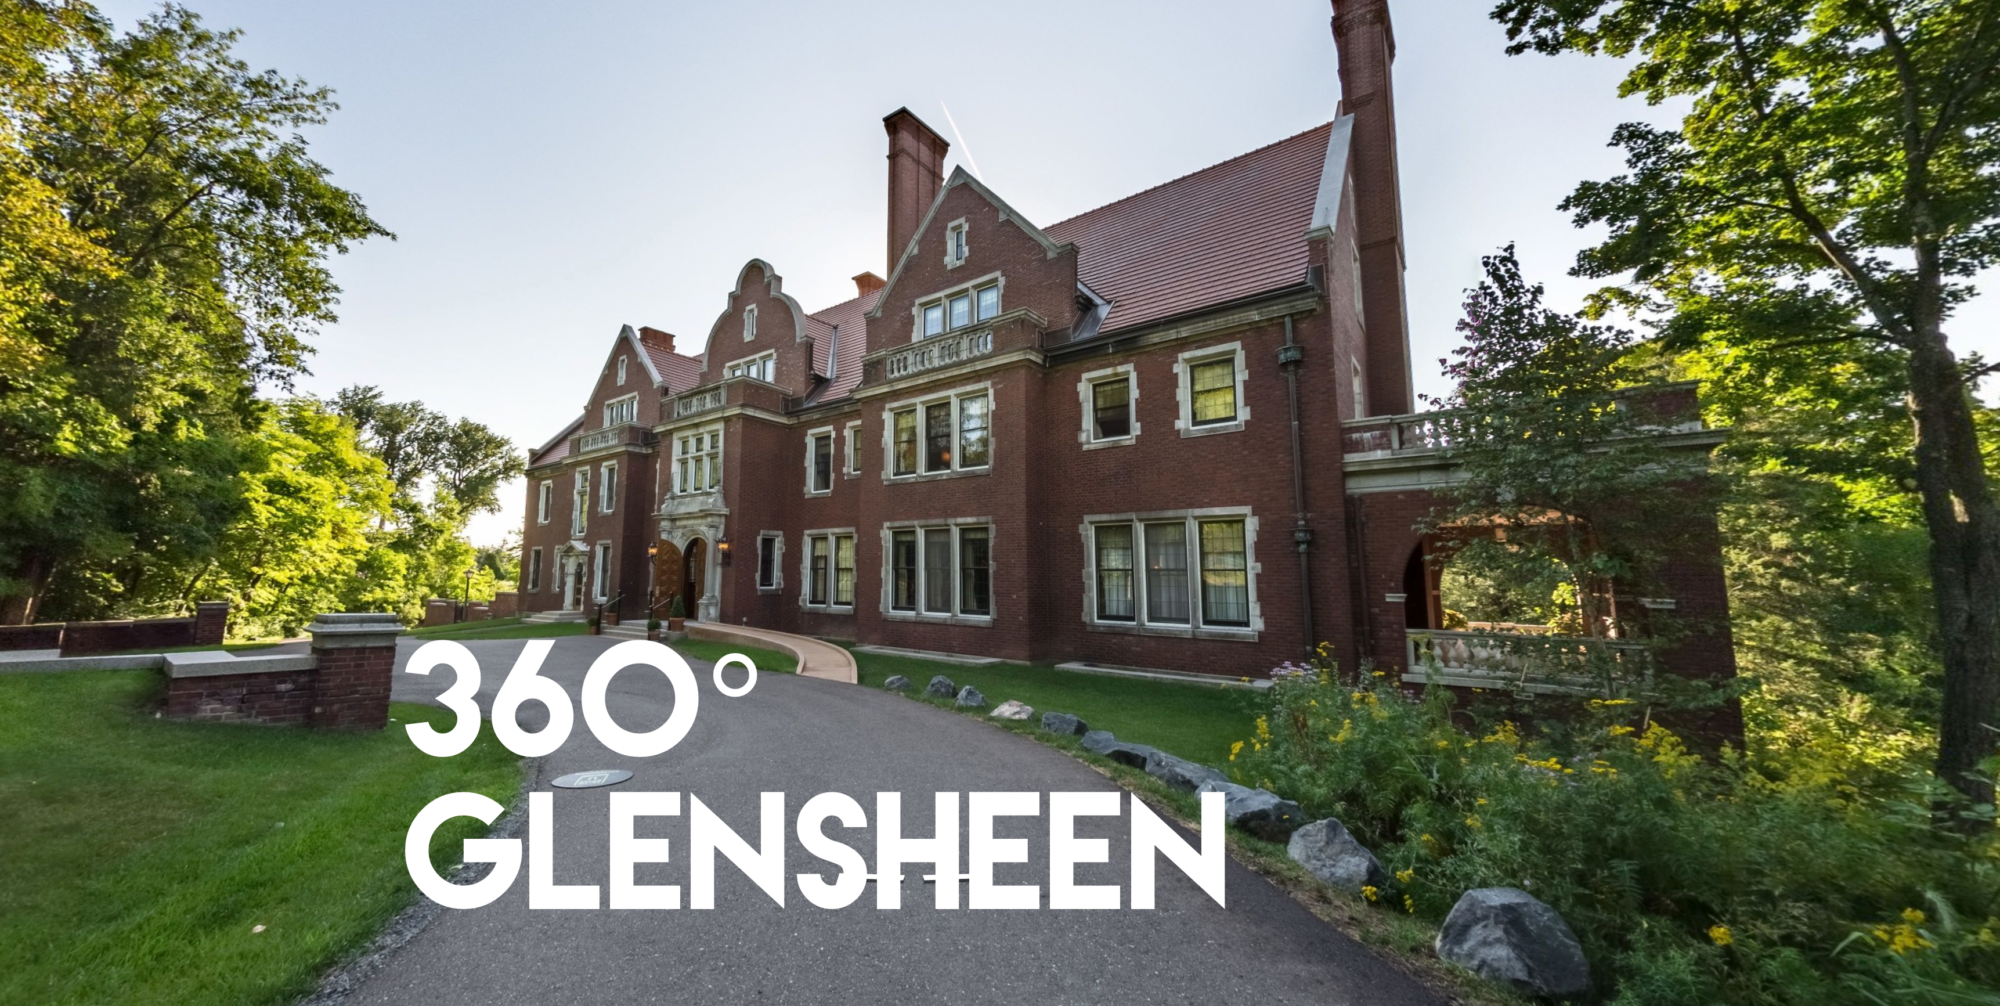 Tour Glensheen virtually here